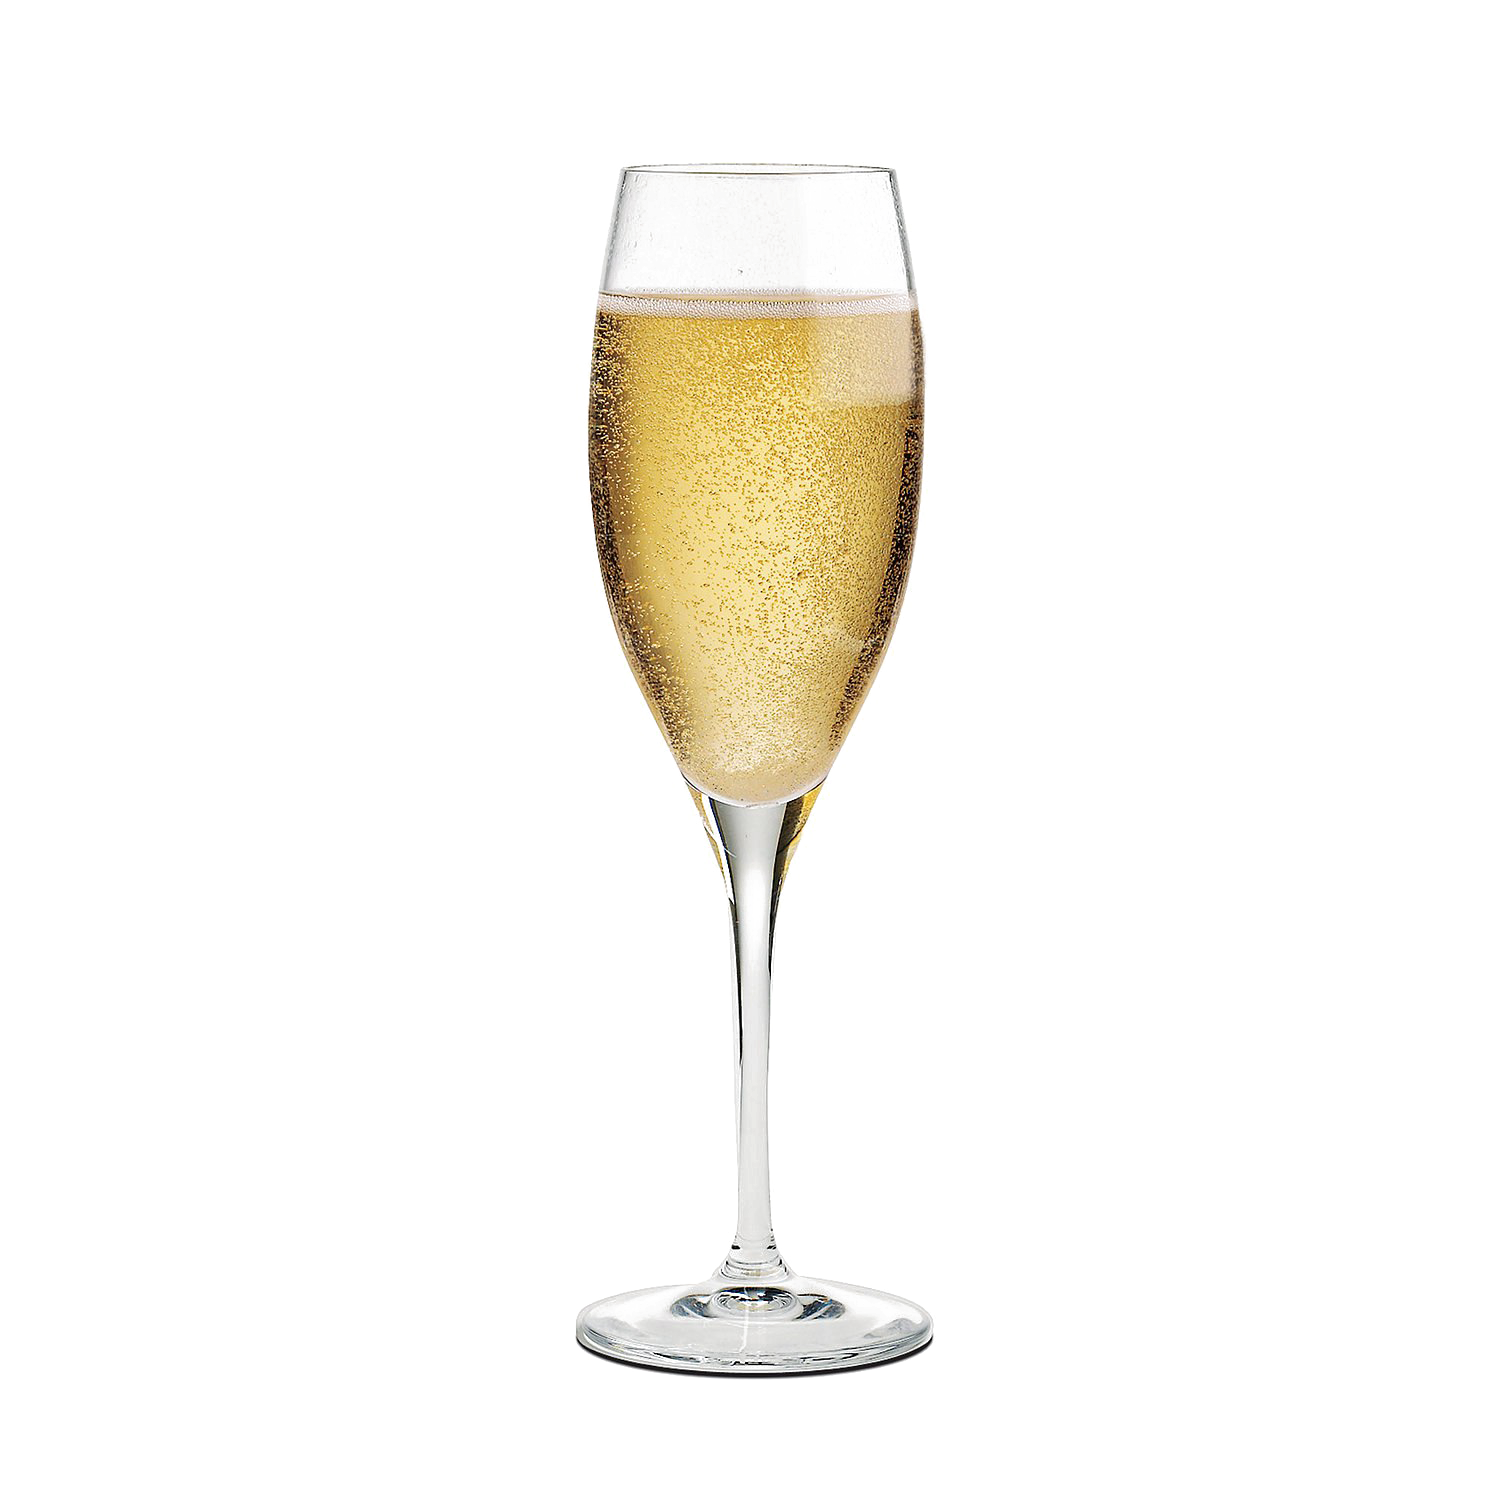 Champagne glass clipart transparent.